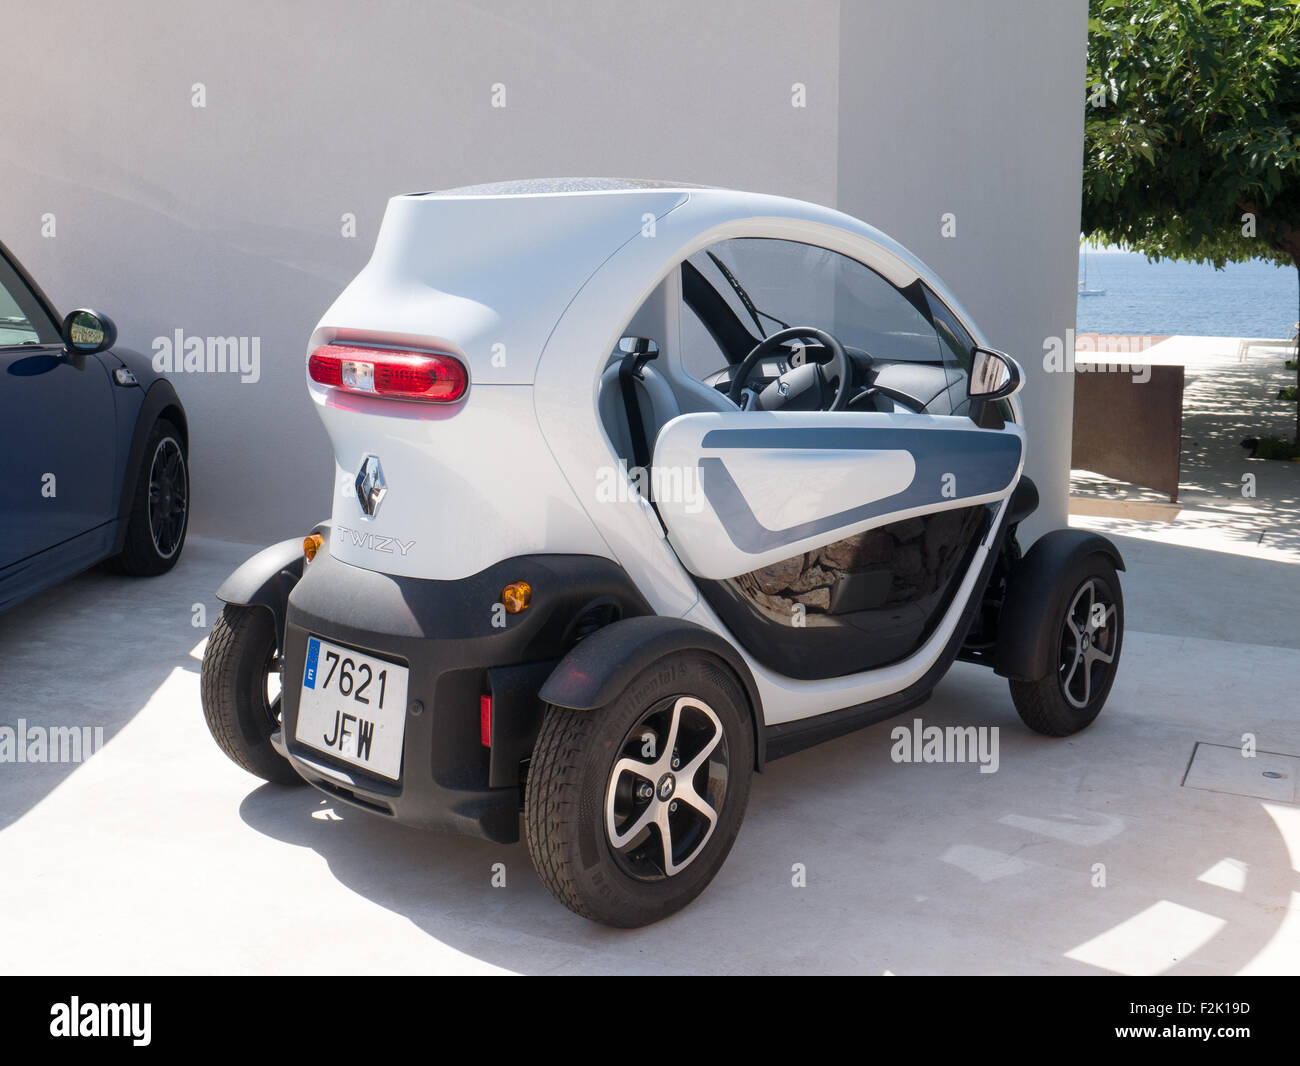 Renault Twizy electric car - Stock Image